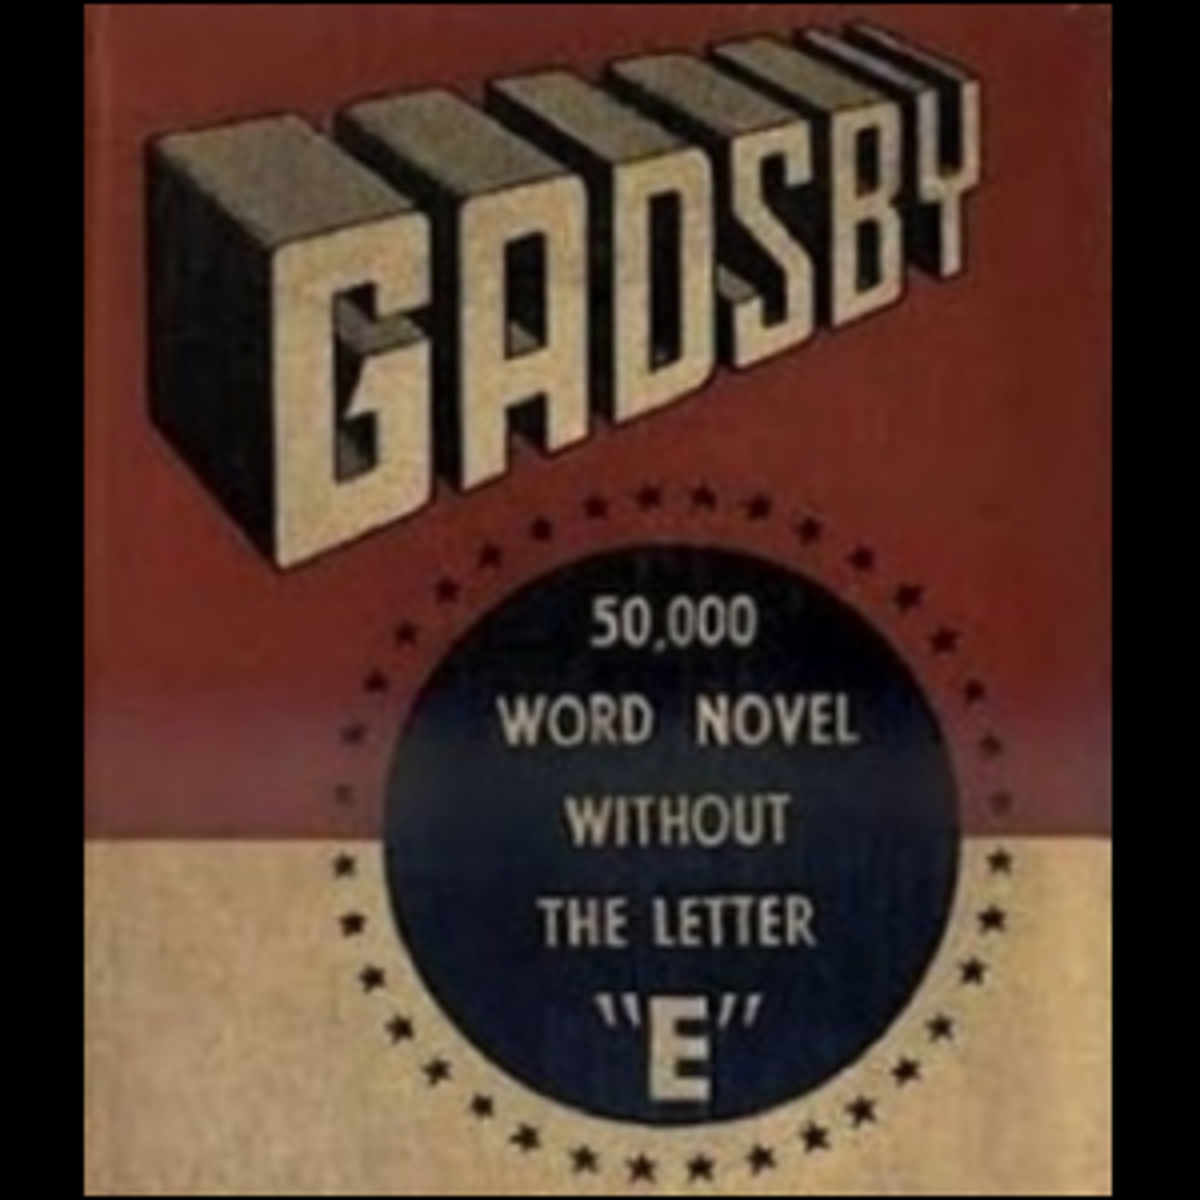 The cover of the 1939 novel Gadsby, noted for not containing the letter E.